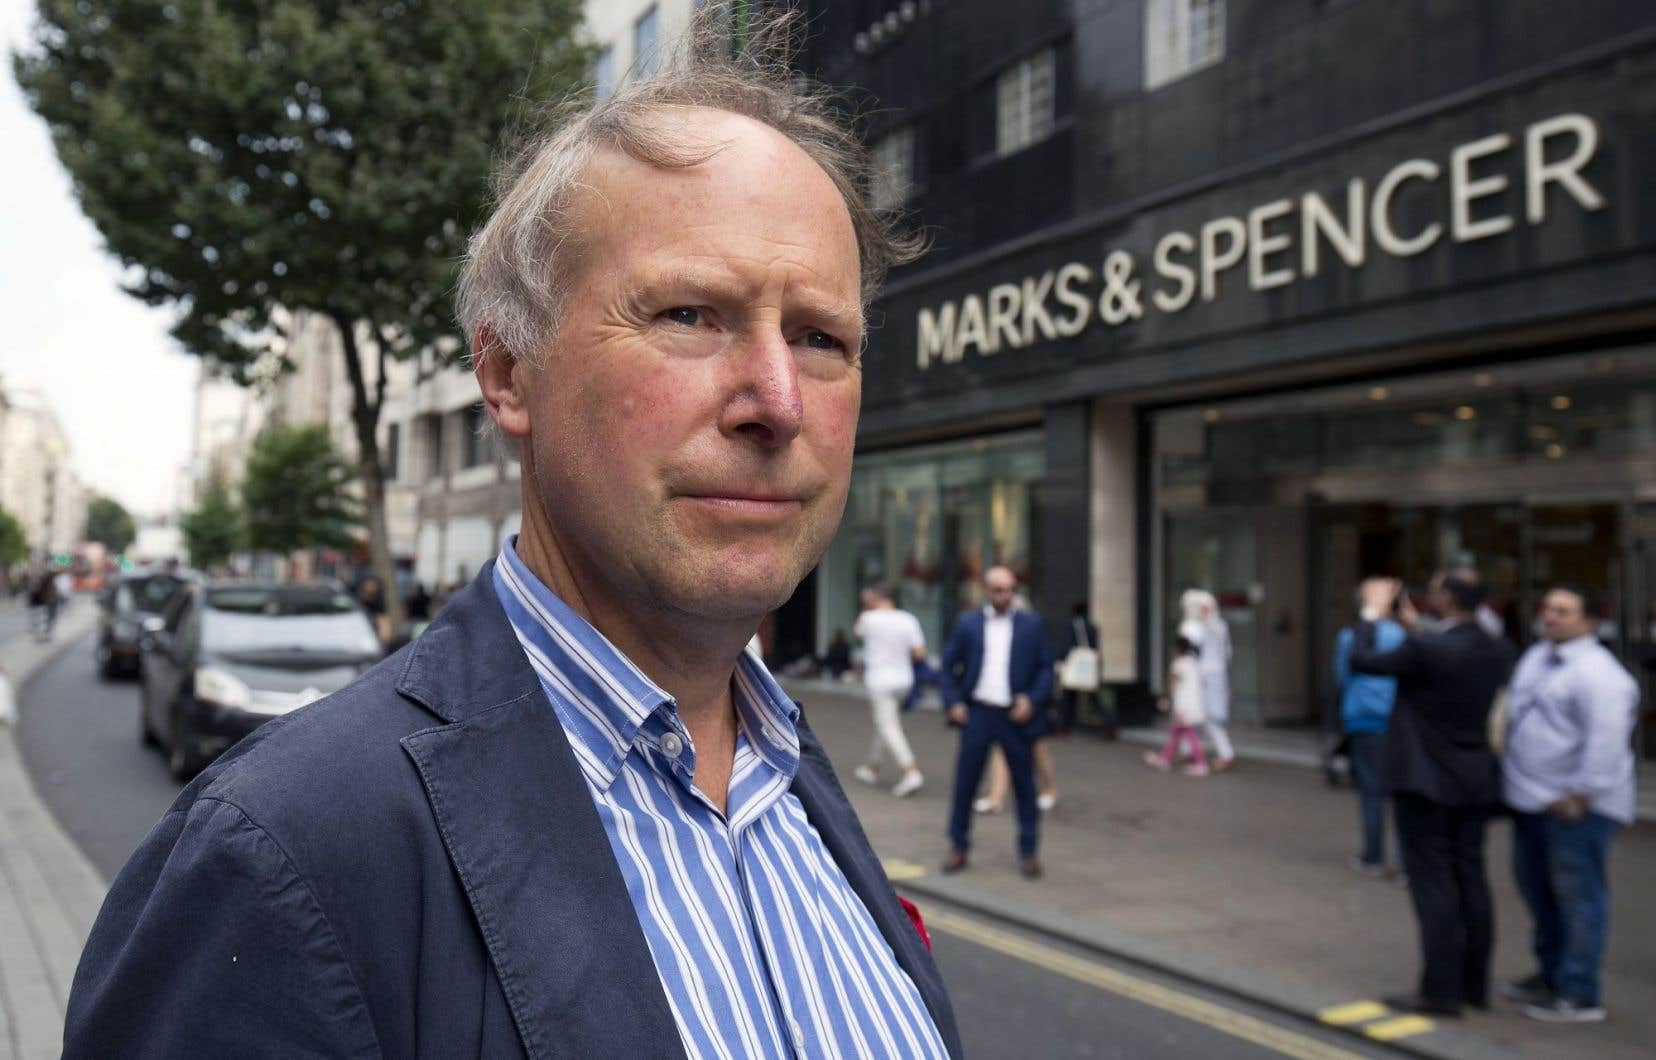 Nigel Rodgers devant un magasin Marks and Spencer sur Oxford Street, à Londres